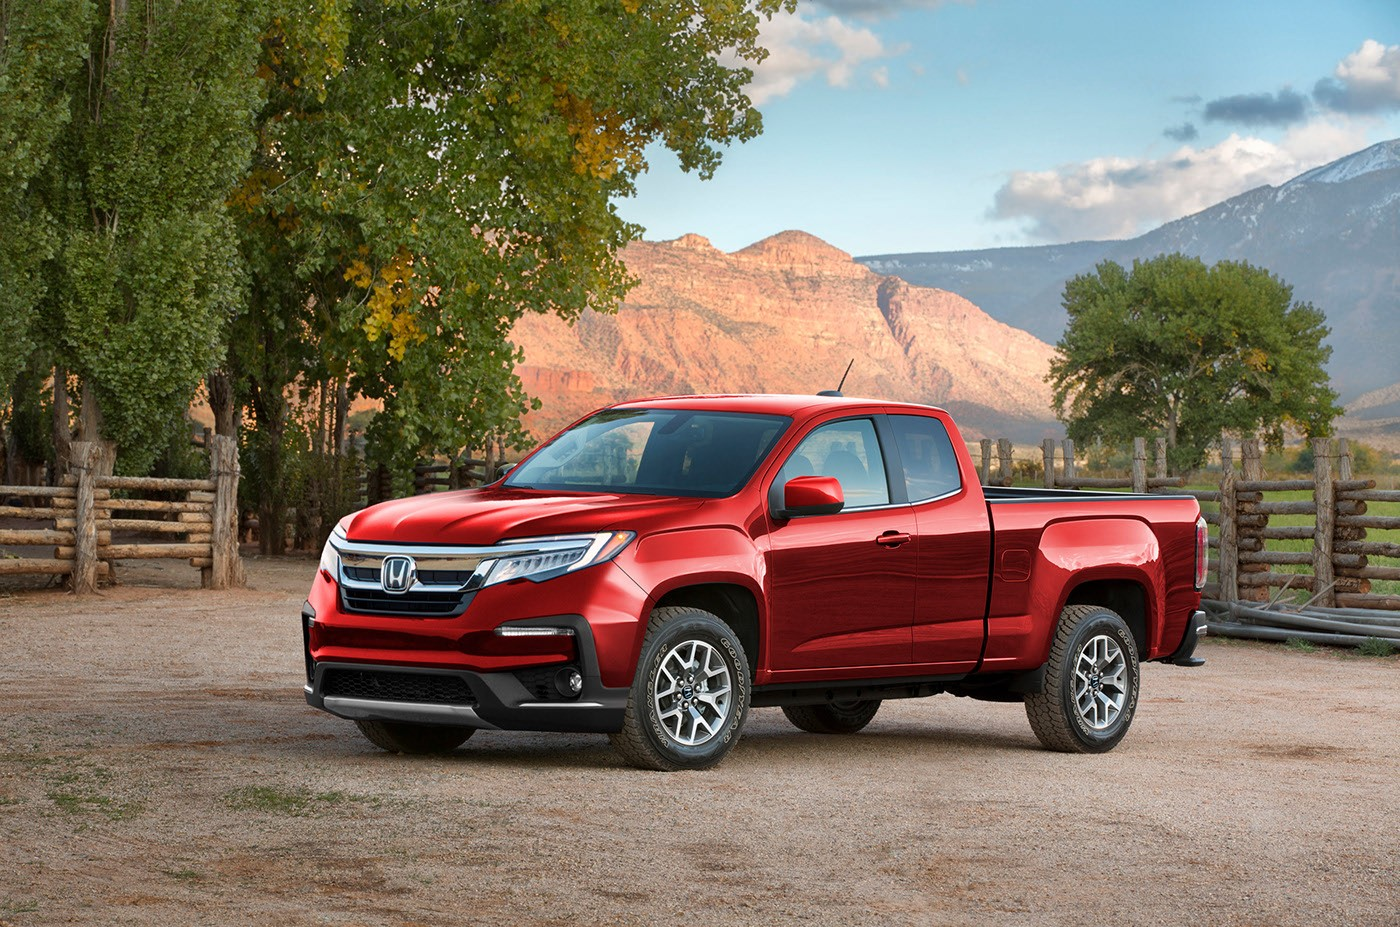 Honda Ridgeline Reimagined With Body-On-Frame Chassis of the GMC